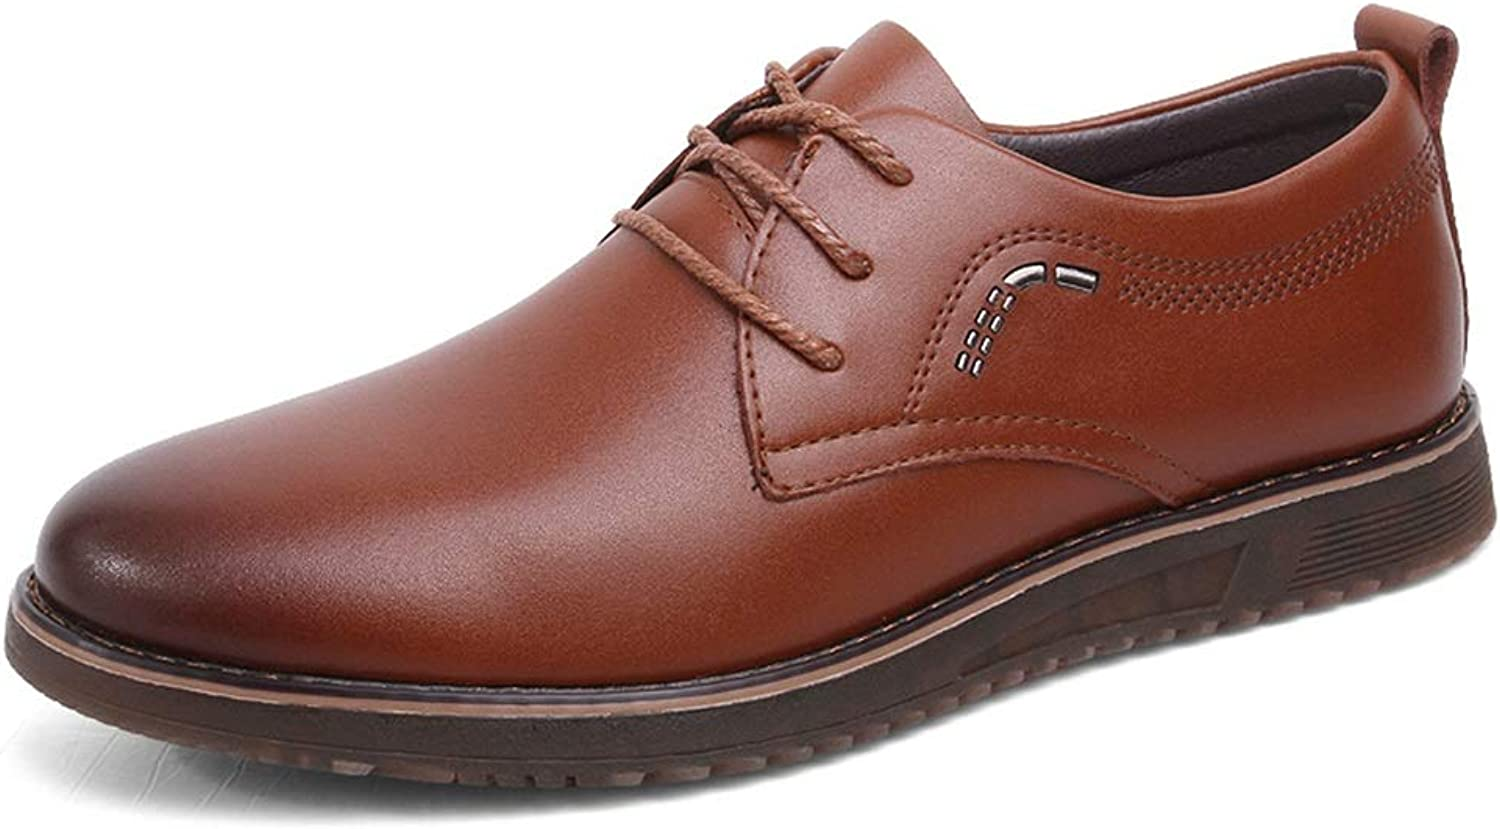 Easy Go Shopping Business Casual Oxford shoes For Men Comfortable Genuine Leather Dress Loafers Anti-slip Flat Slip-on Lace Up Round Toe shoes Cricket shoes (color   Brown, Size   6 UK)